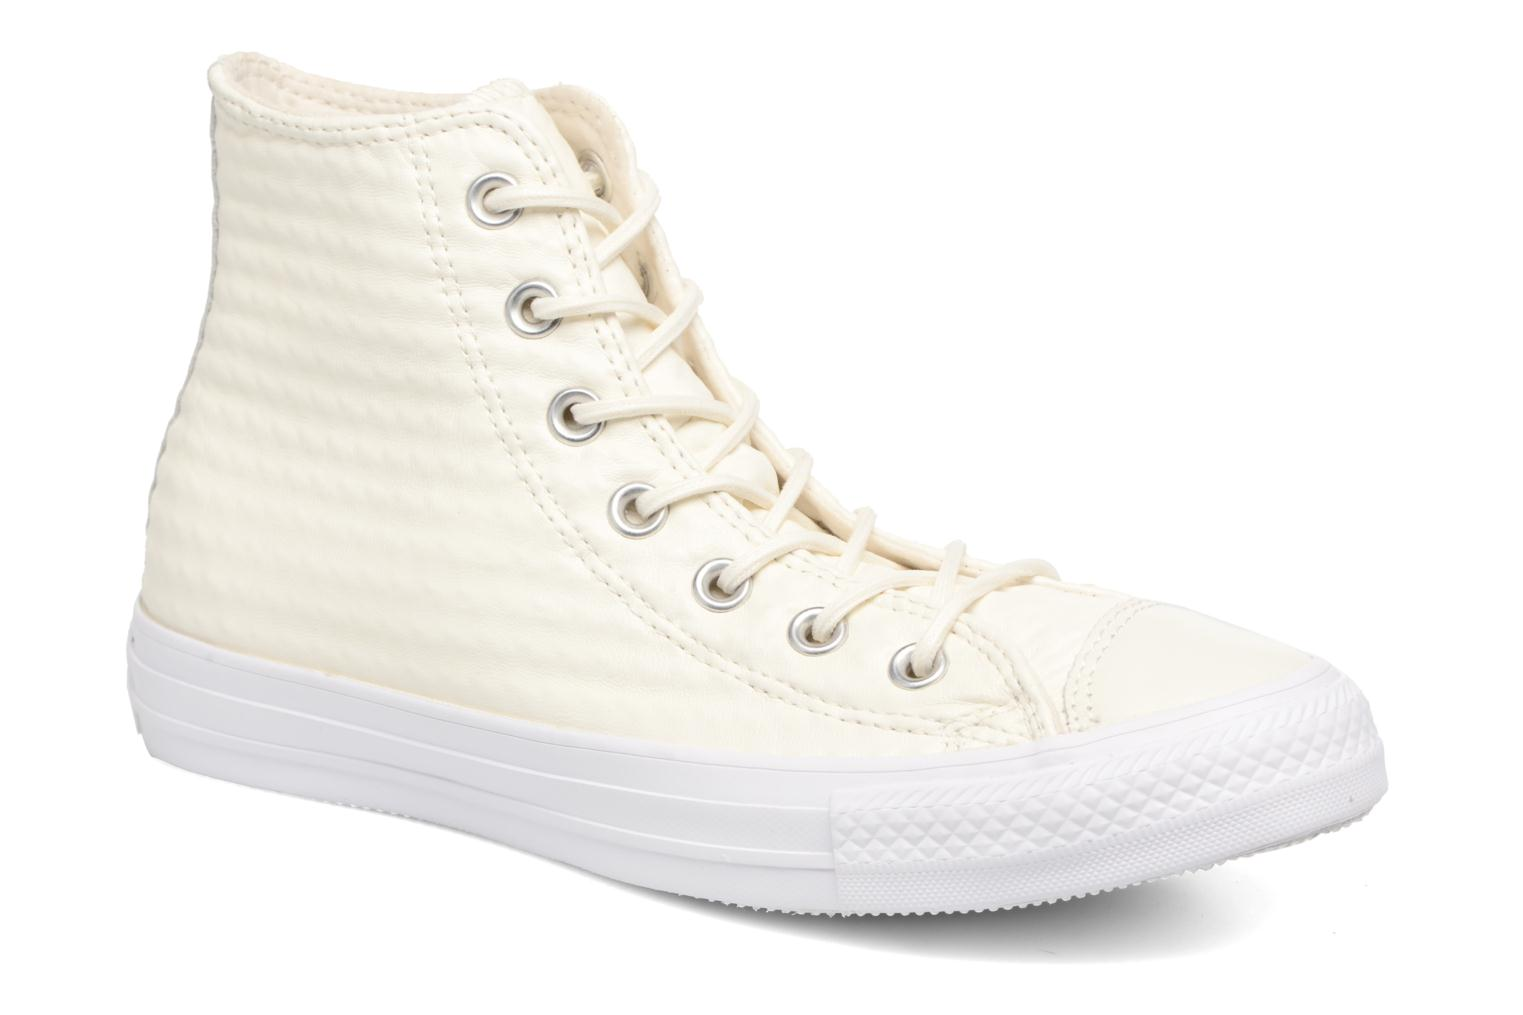 Converse Chuck Taylor All Star Craft Leather Hi Blanc